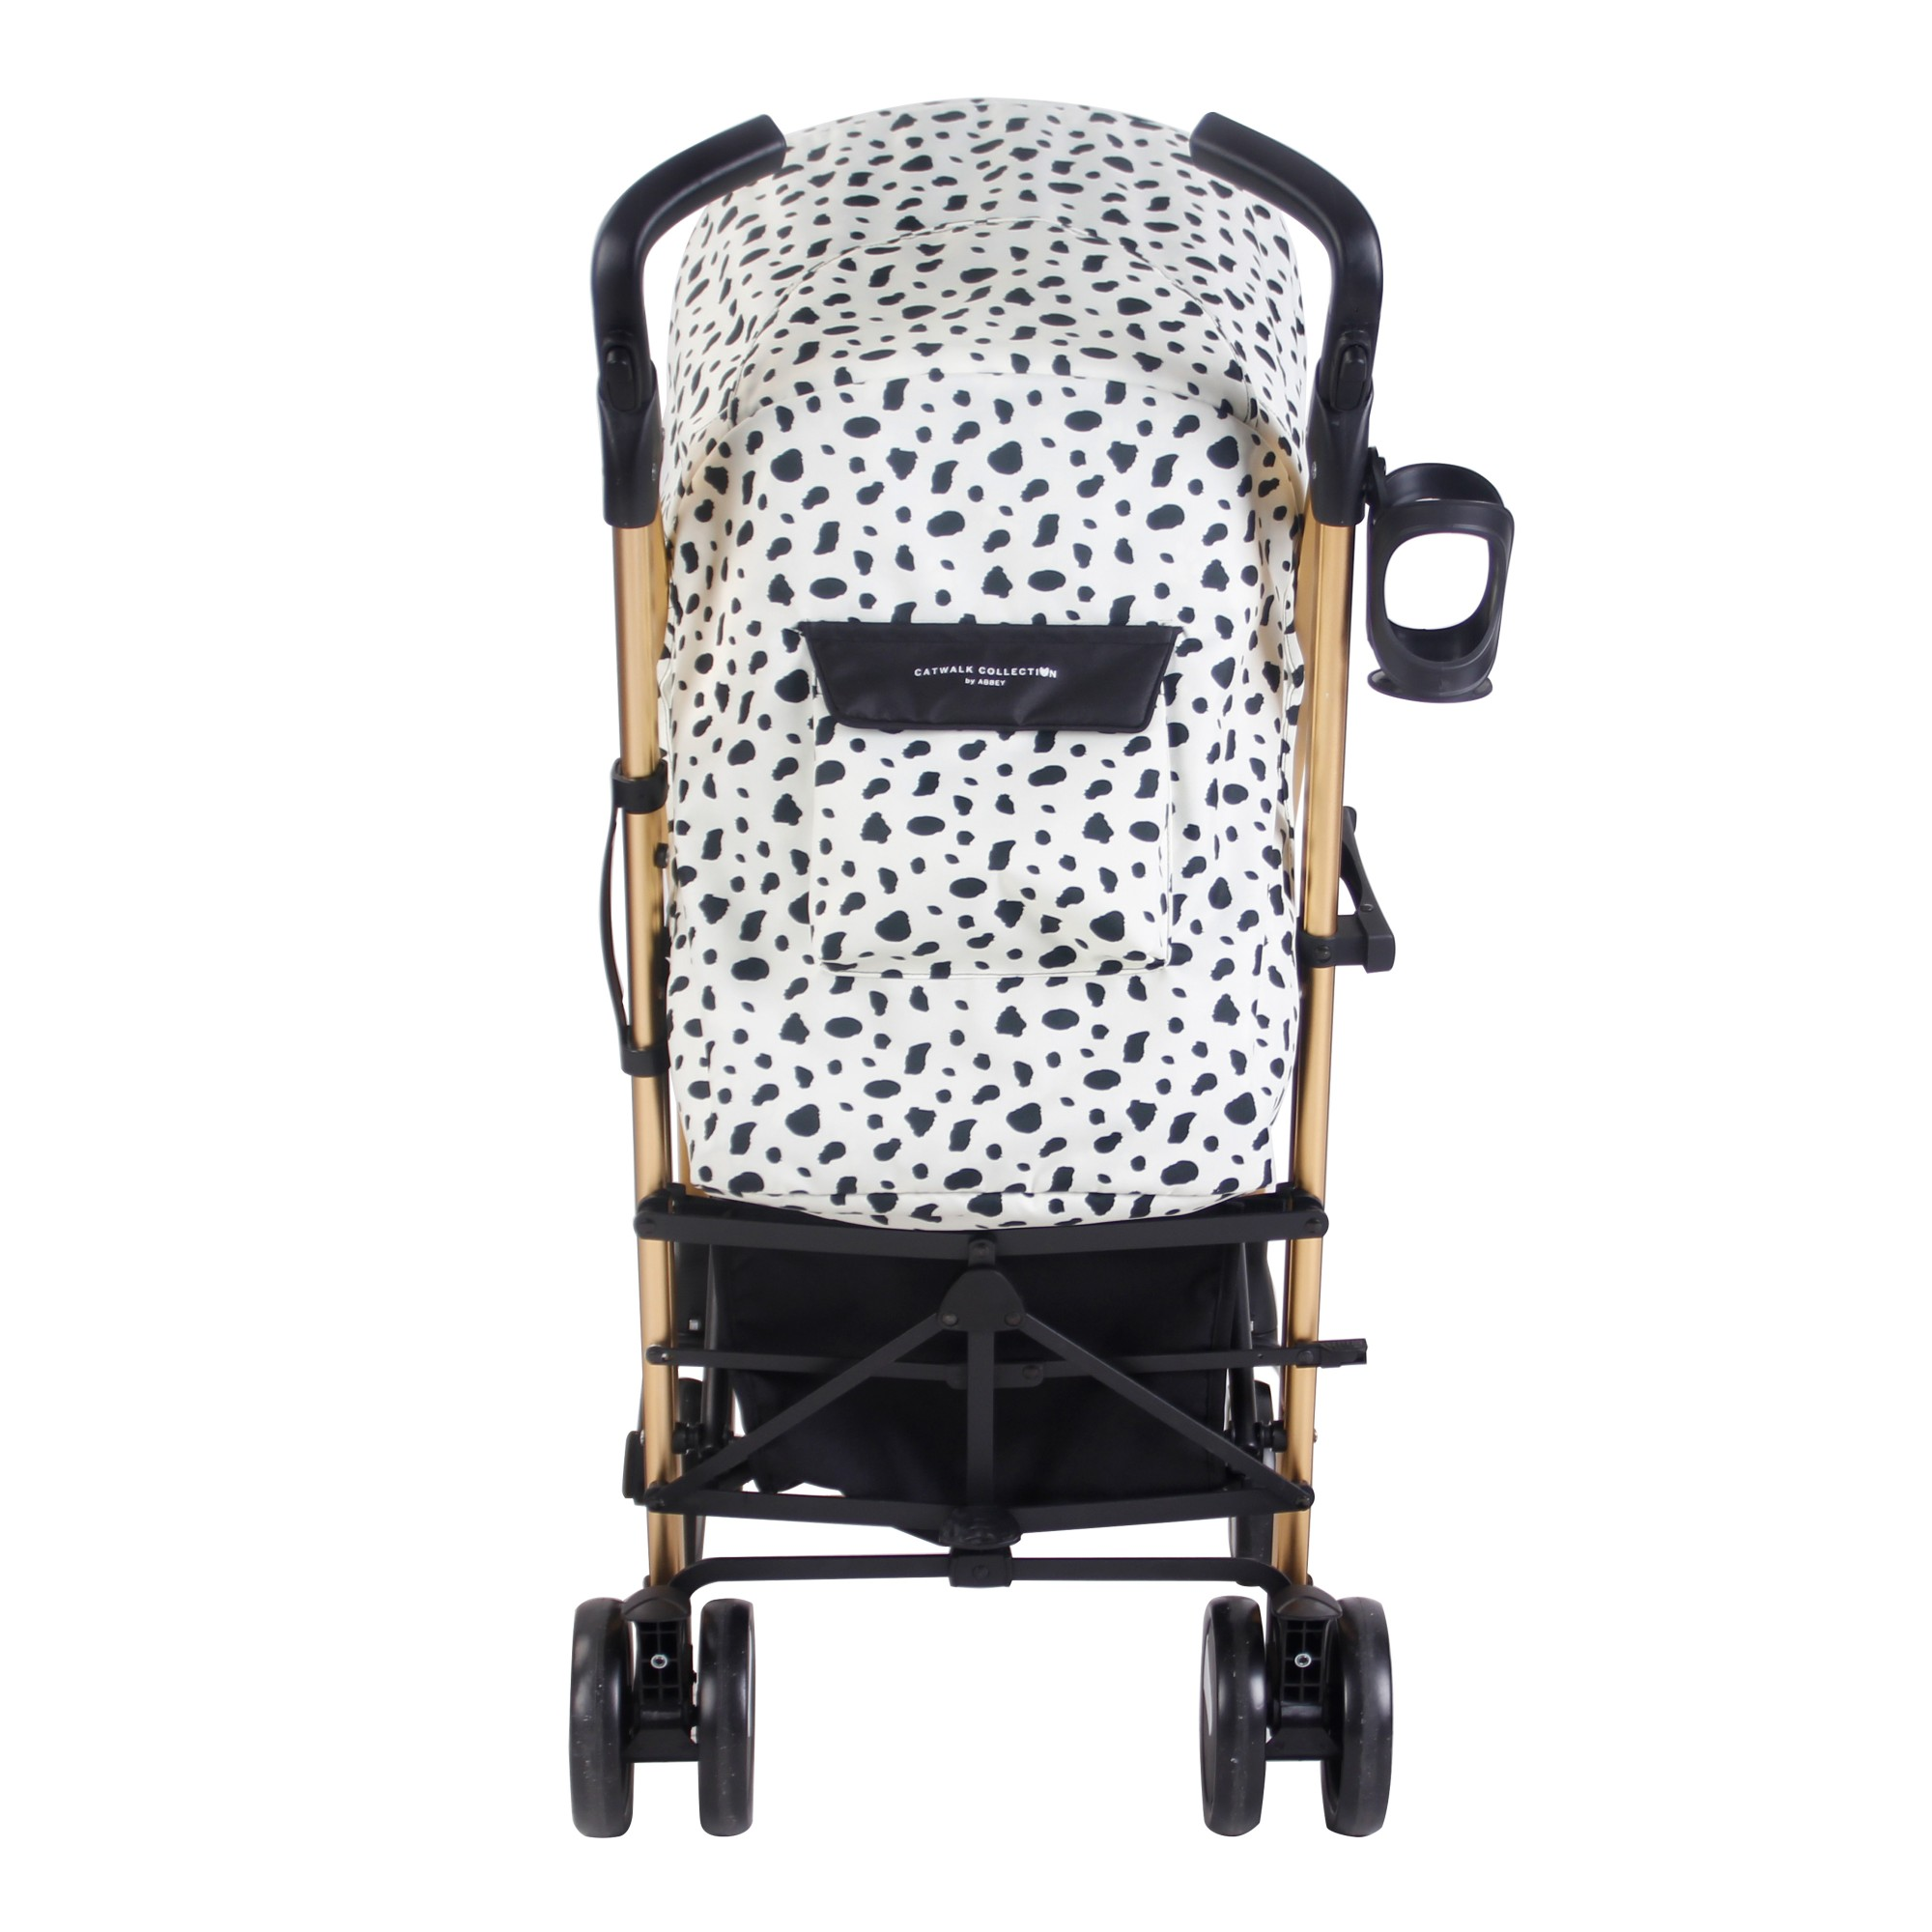 My Babiie Abbey Clancy Catwalk Collection Dalmatian Baby Changing Bag